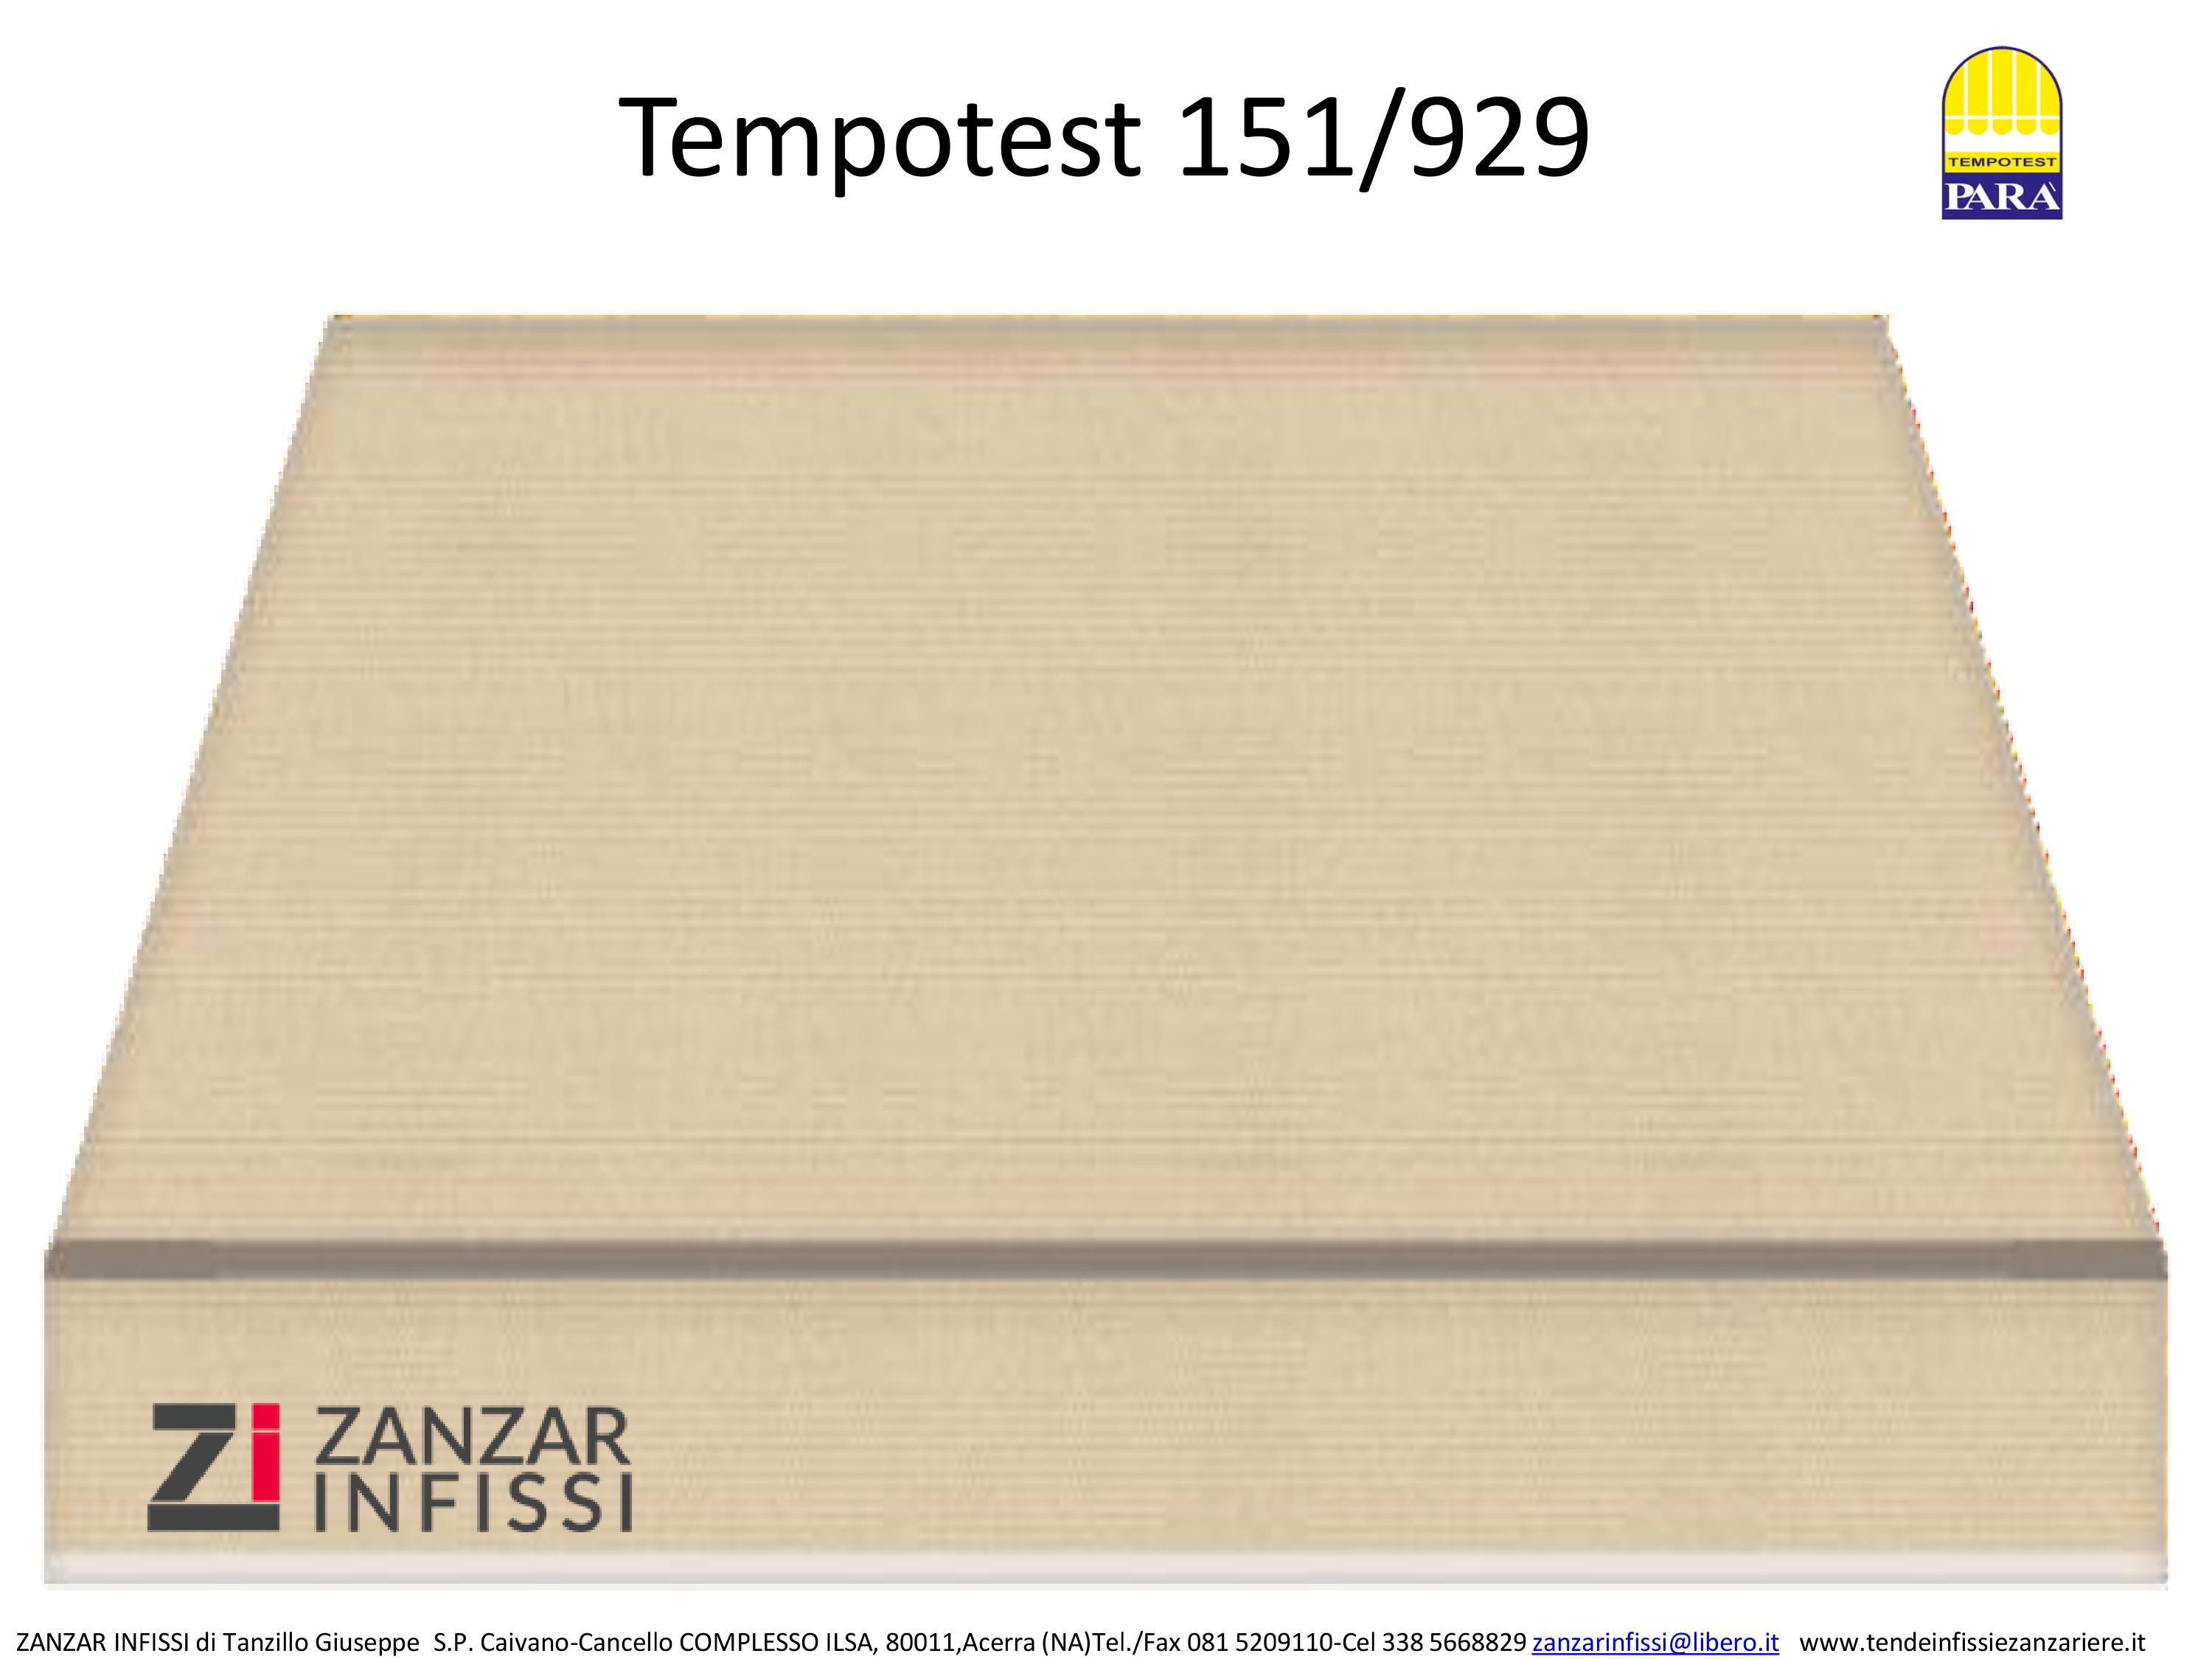 Tempotest 151/929